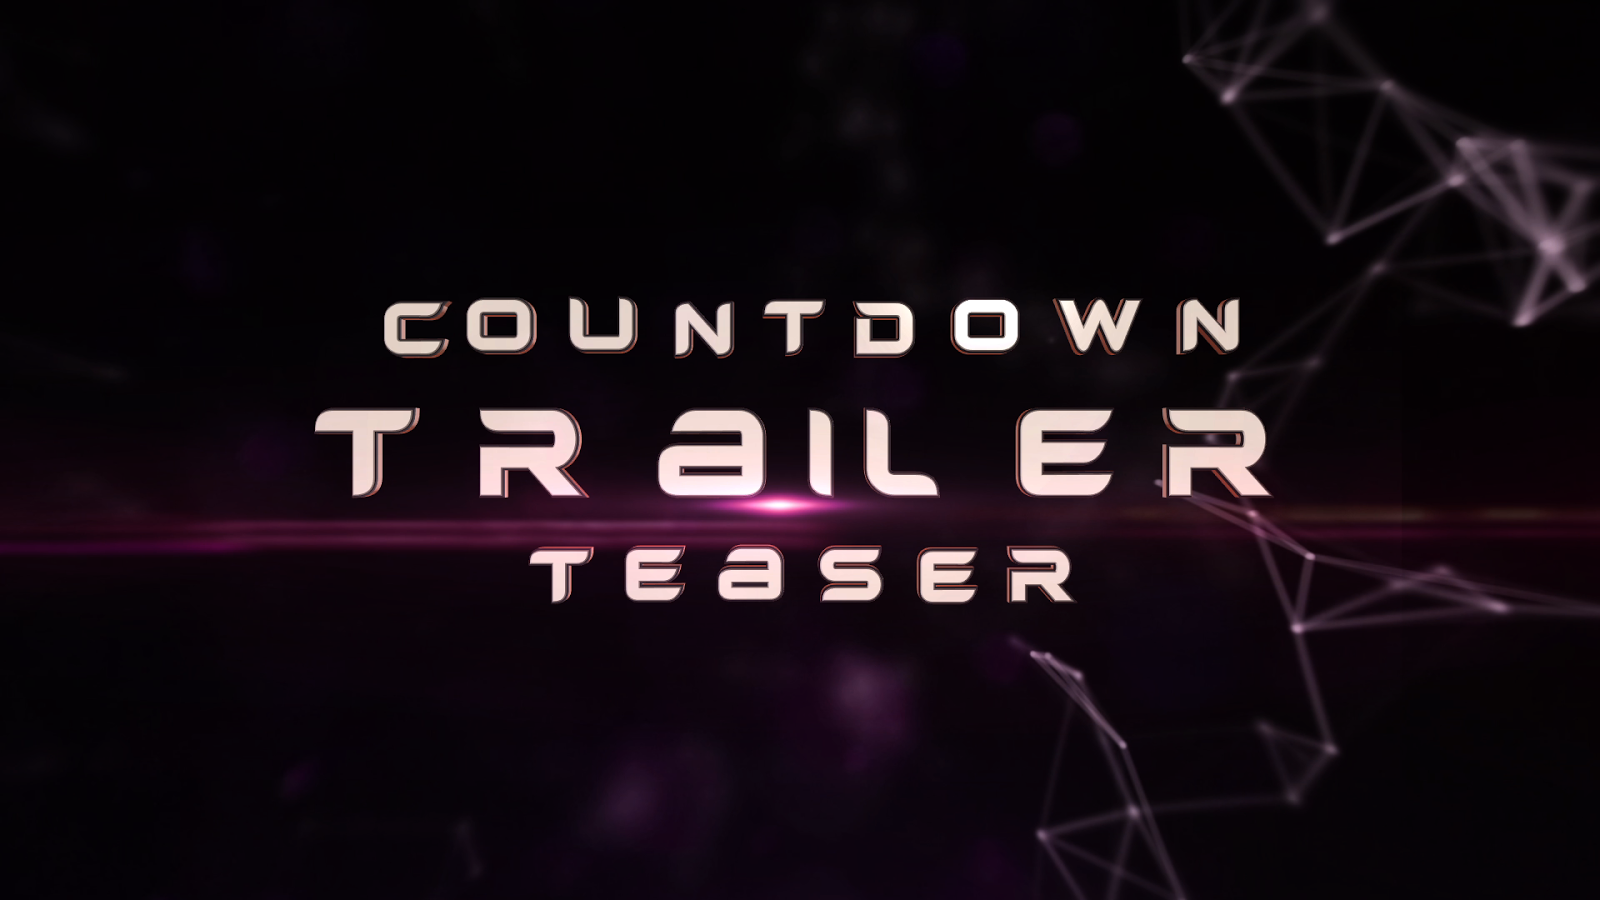 After Effects Template - Countdown Trailer Teaser - gosharemore ...